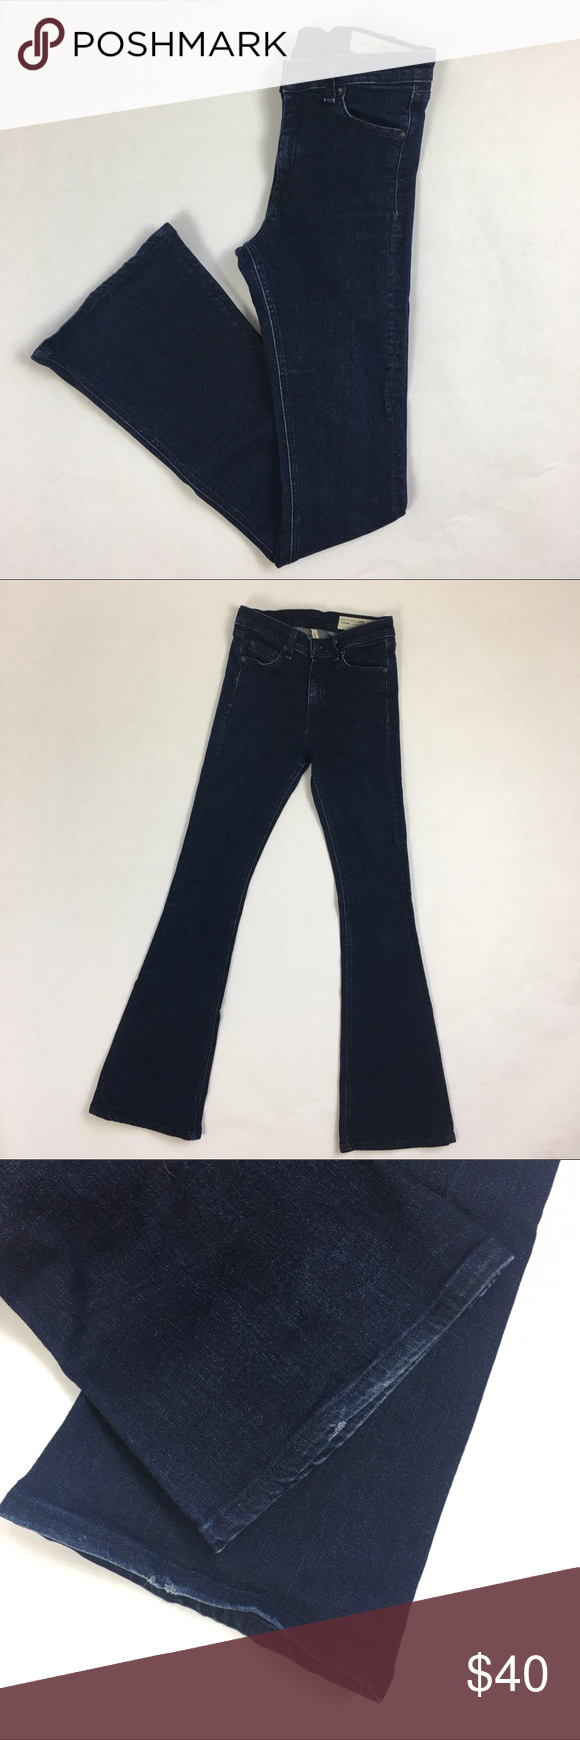 "Rag & Bone High Rise Bell Bootcut Jeans Rag & Bone High Rise Bell Bootcut Jeans.  Size 27.   ▪️Waistband:  24"" ▪️Rise:  9"" ▪️Inseam:  32 ▪️Condition: excellent - normal wear, refer to photos    No trades. Offers warmly welcomed rag & bone Jeans Boot Cut"